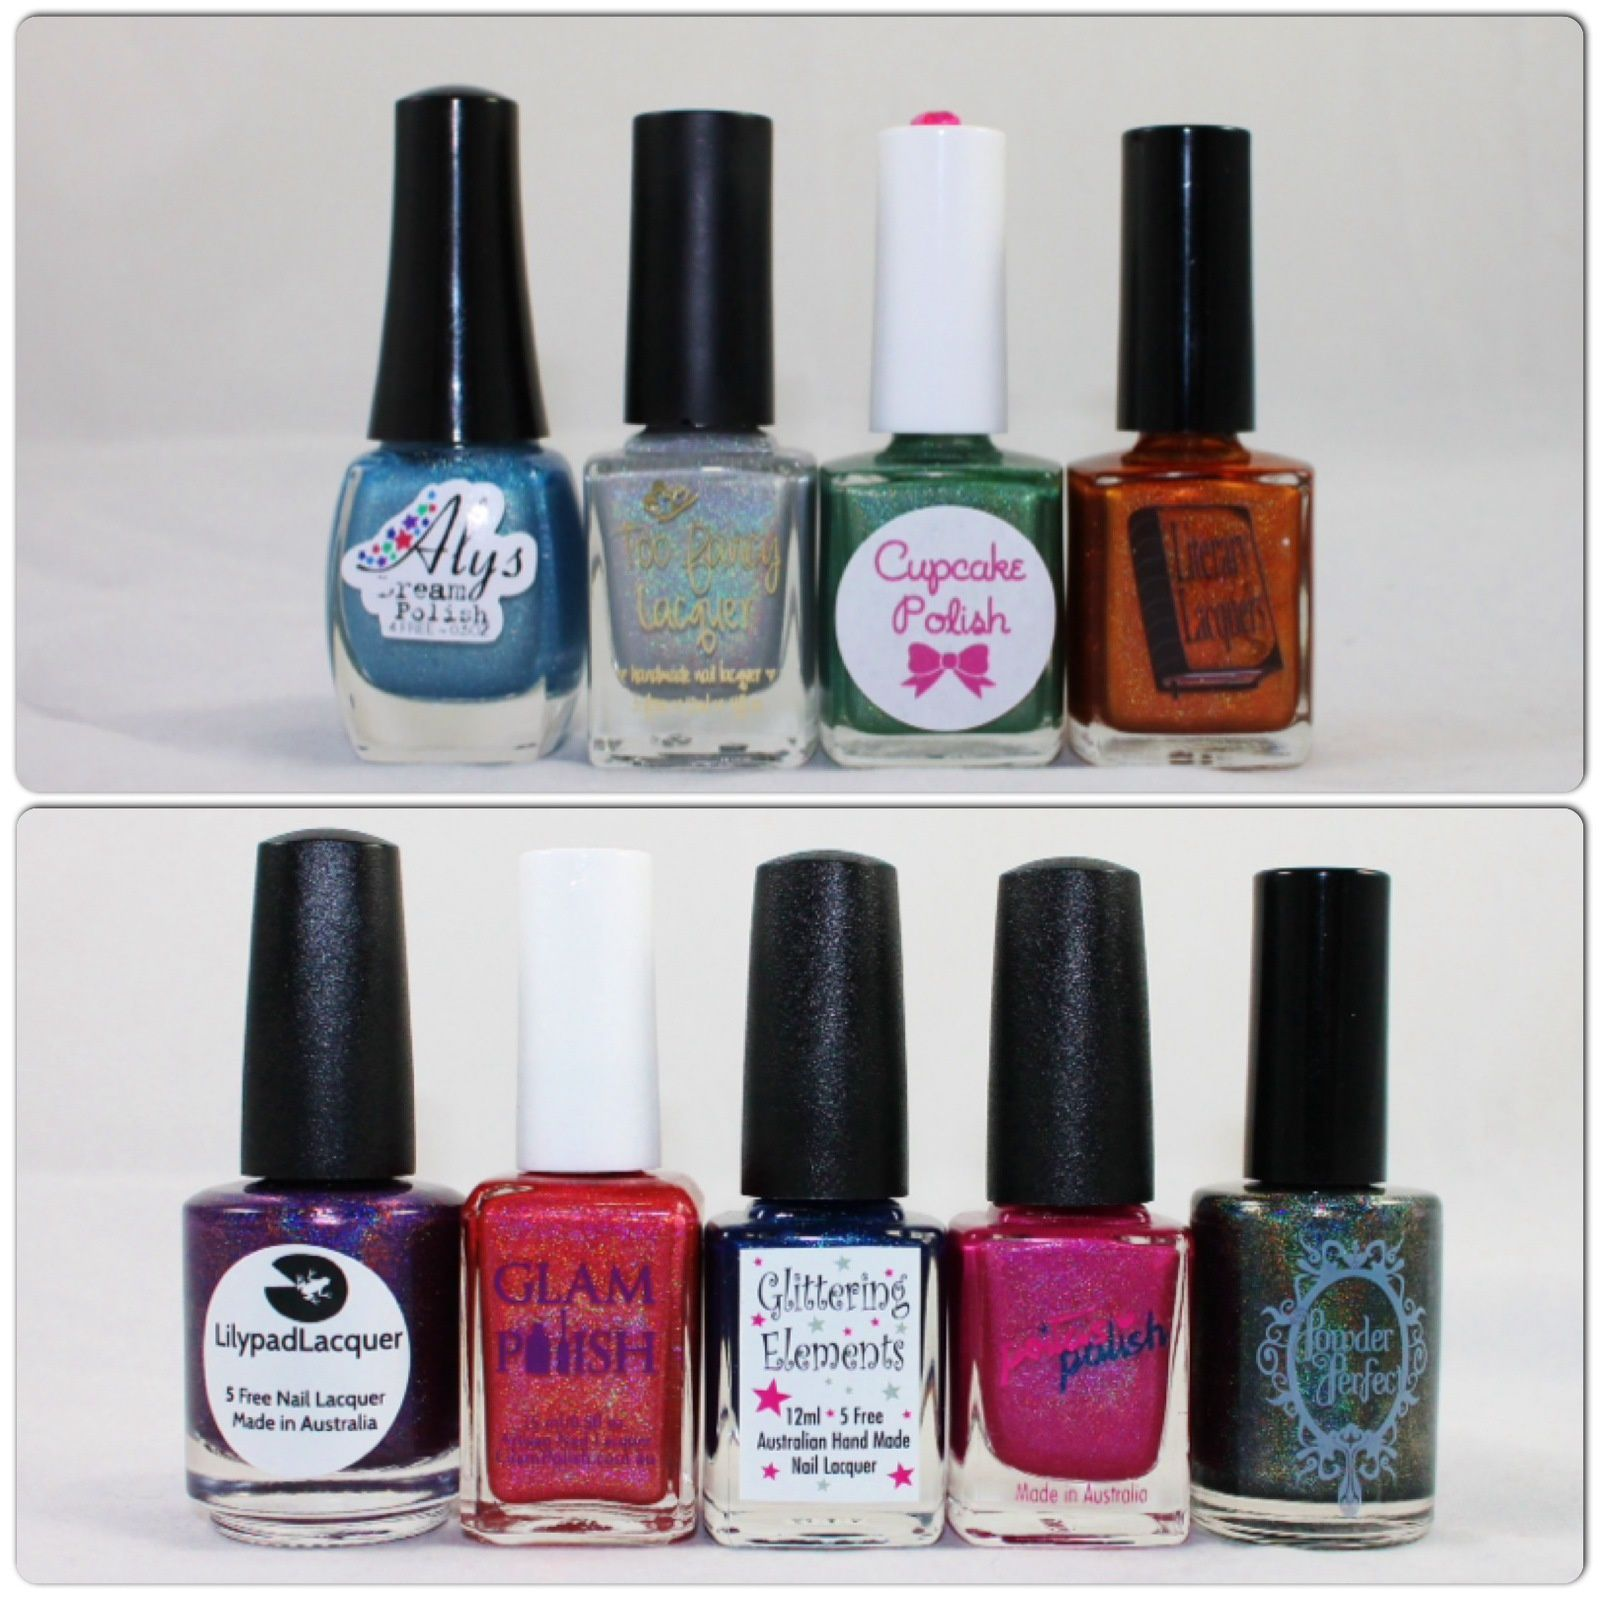 Dazzled Holograil May 2014 (Aly's Dream Polish H2whOa, Too Fancy Lacquer Pixie Wisper, Cupcake Polish Earth Girl, Literary Lacquer Not Up Close). What's Indie Box June 2014 (Lilypad Lacquer Violet Blaze, Glam Polish Don't Make Me Blush, Glittering Elements Queen of the Mermaids, Peita's Polish Pink Blitz, Powder Perfect Party in the Park).